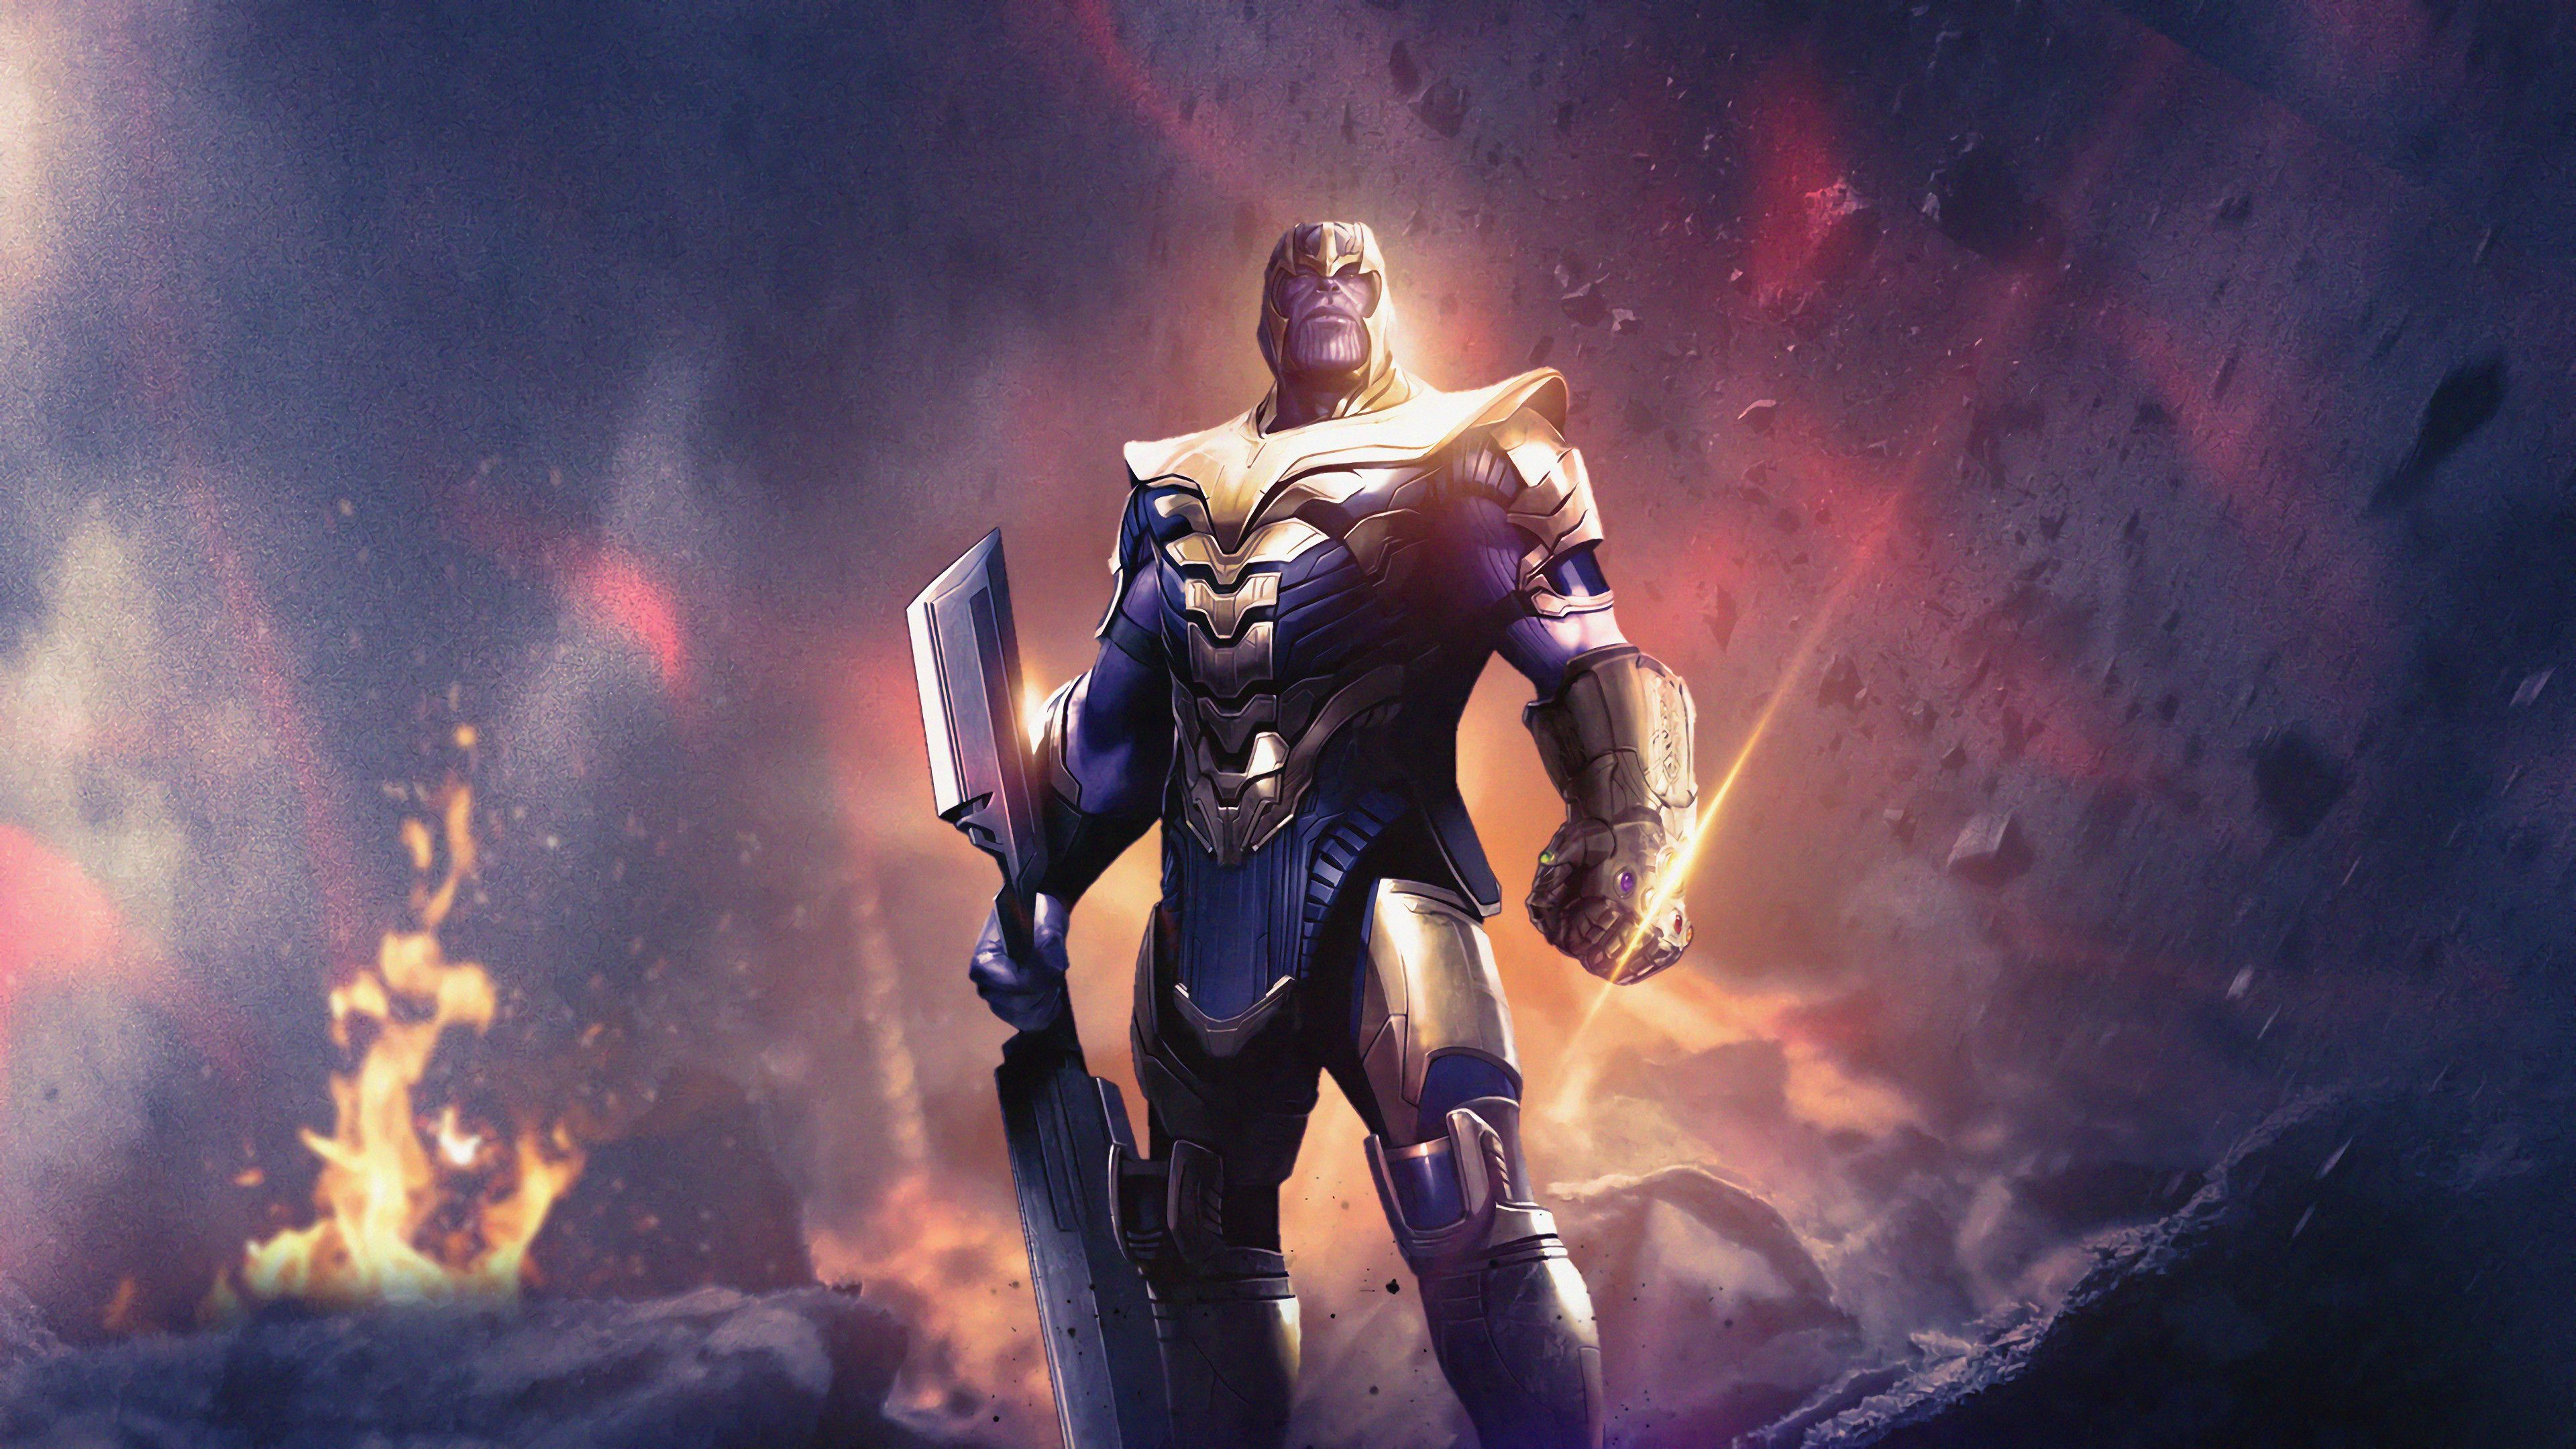 123MOVIES@@WATCH Avengers: Endgame Online (2019) Full for Free H?-4K-HD-pX.!! (With images